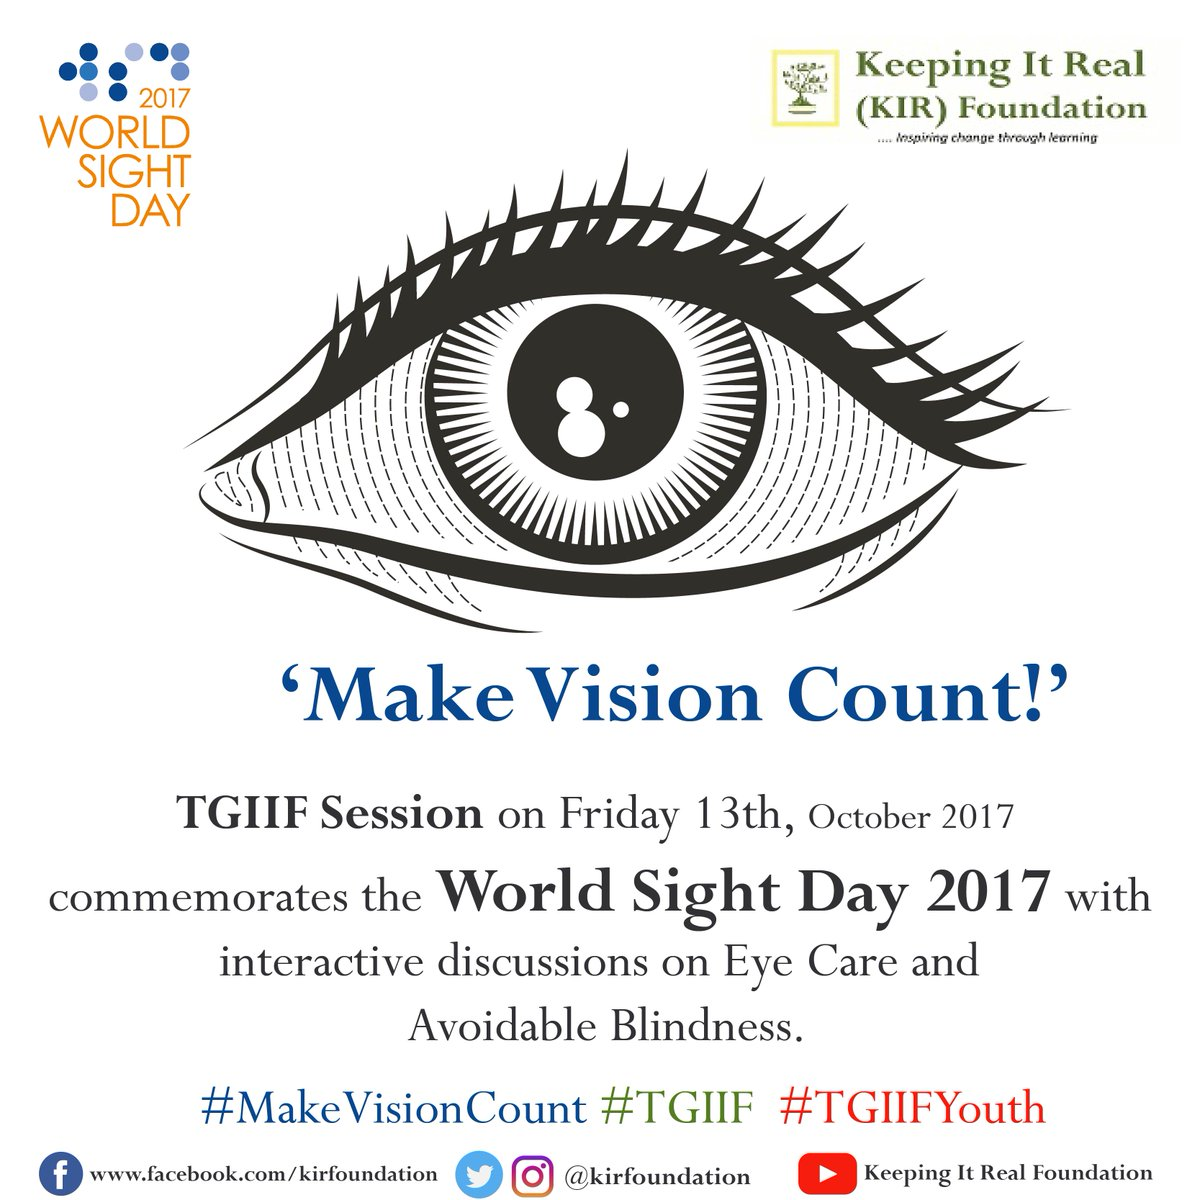 Join #TGIIF #SpecialSession discussion with Dr. Desmond Areghan on 'Eye Care &amp; Avoidable Blindness.' Follow the hashtag #MakeVisionCount<br>http://pic.twitter.com/VAQLPDd7cP